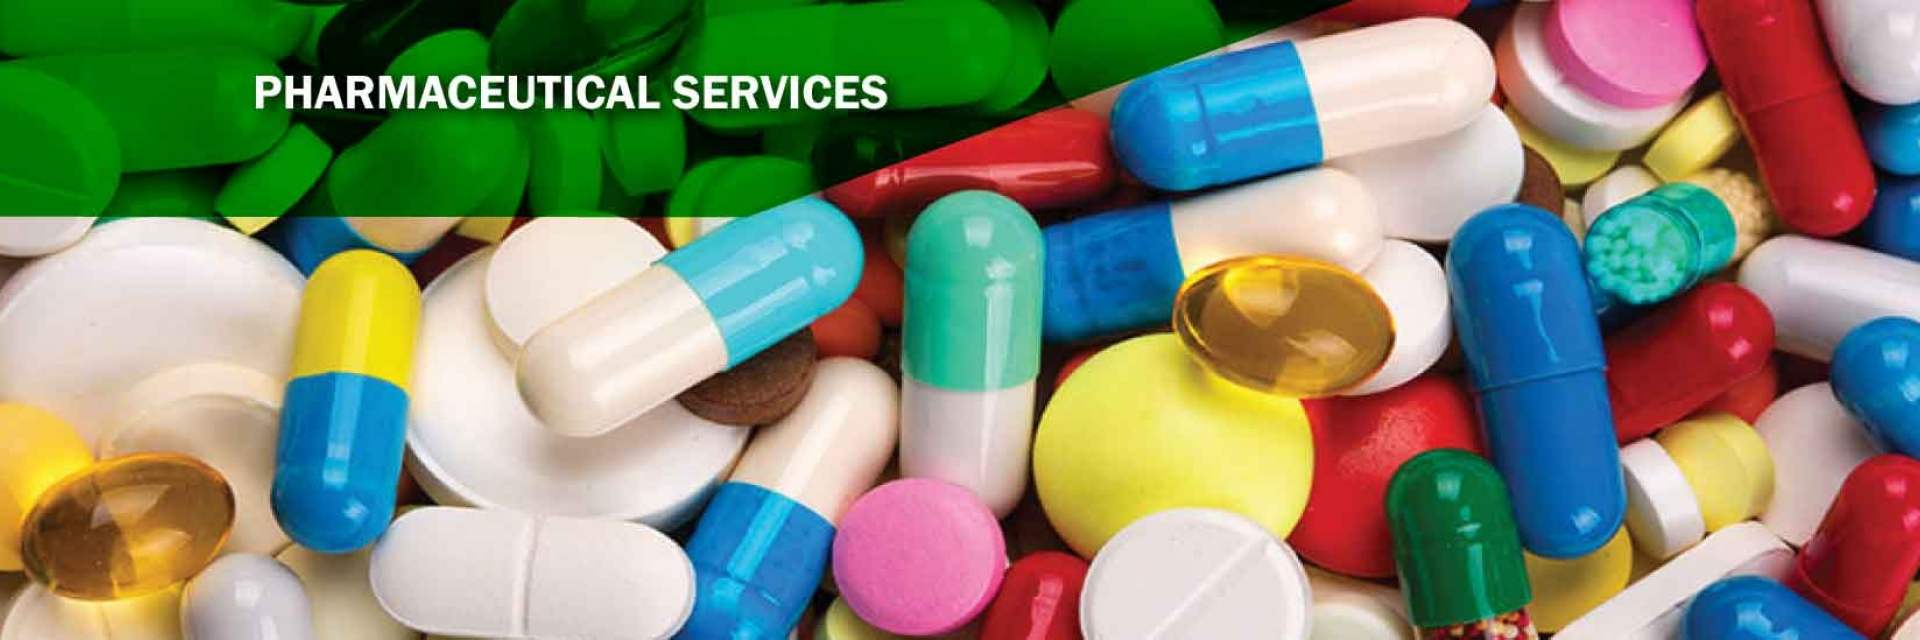 pharmaceutical-services-banner